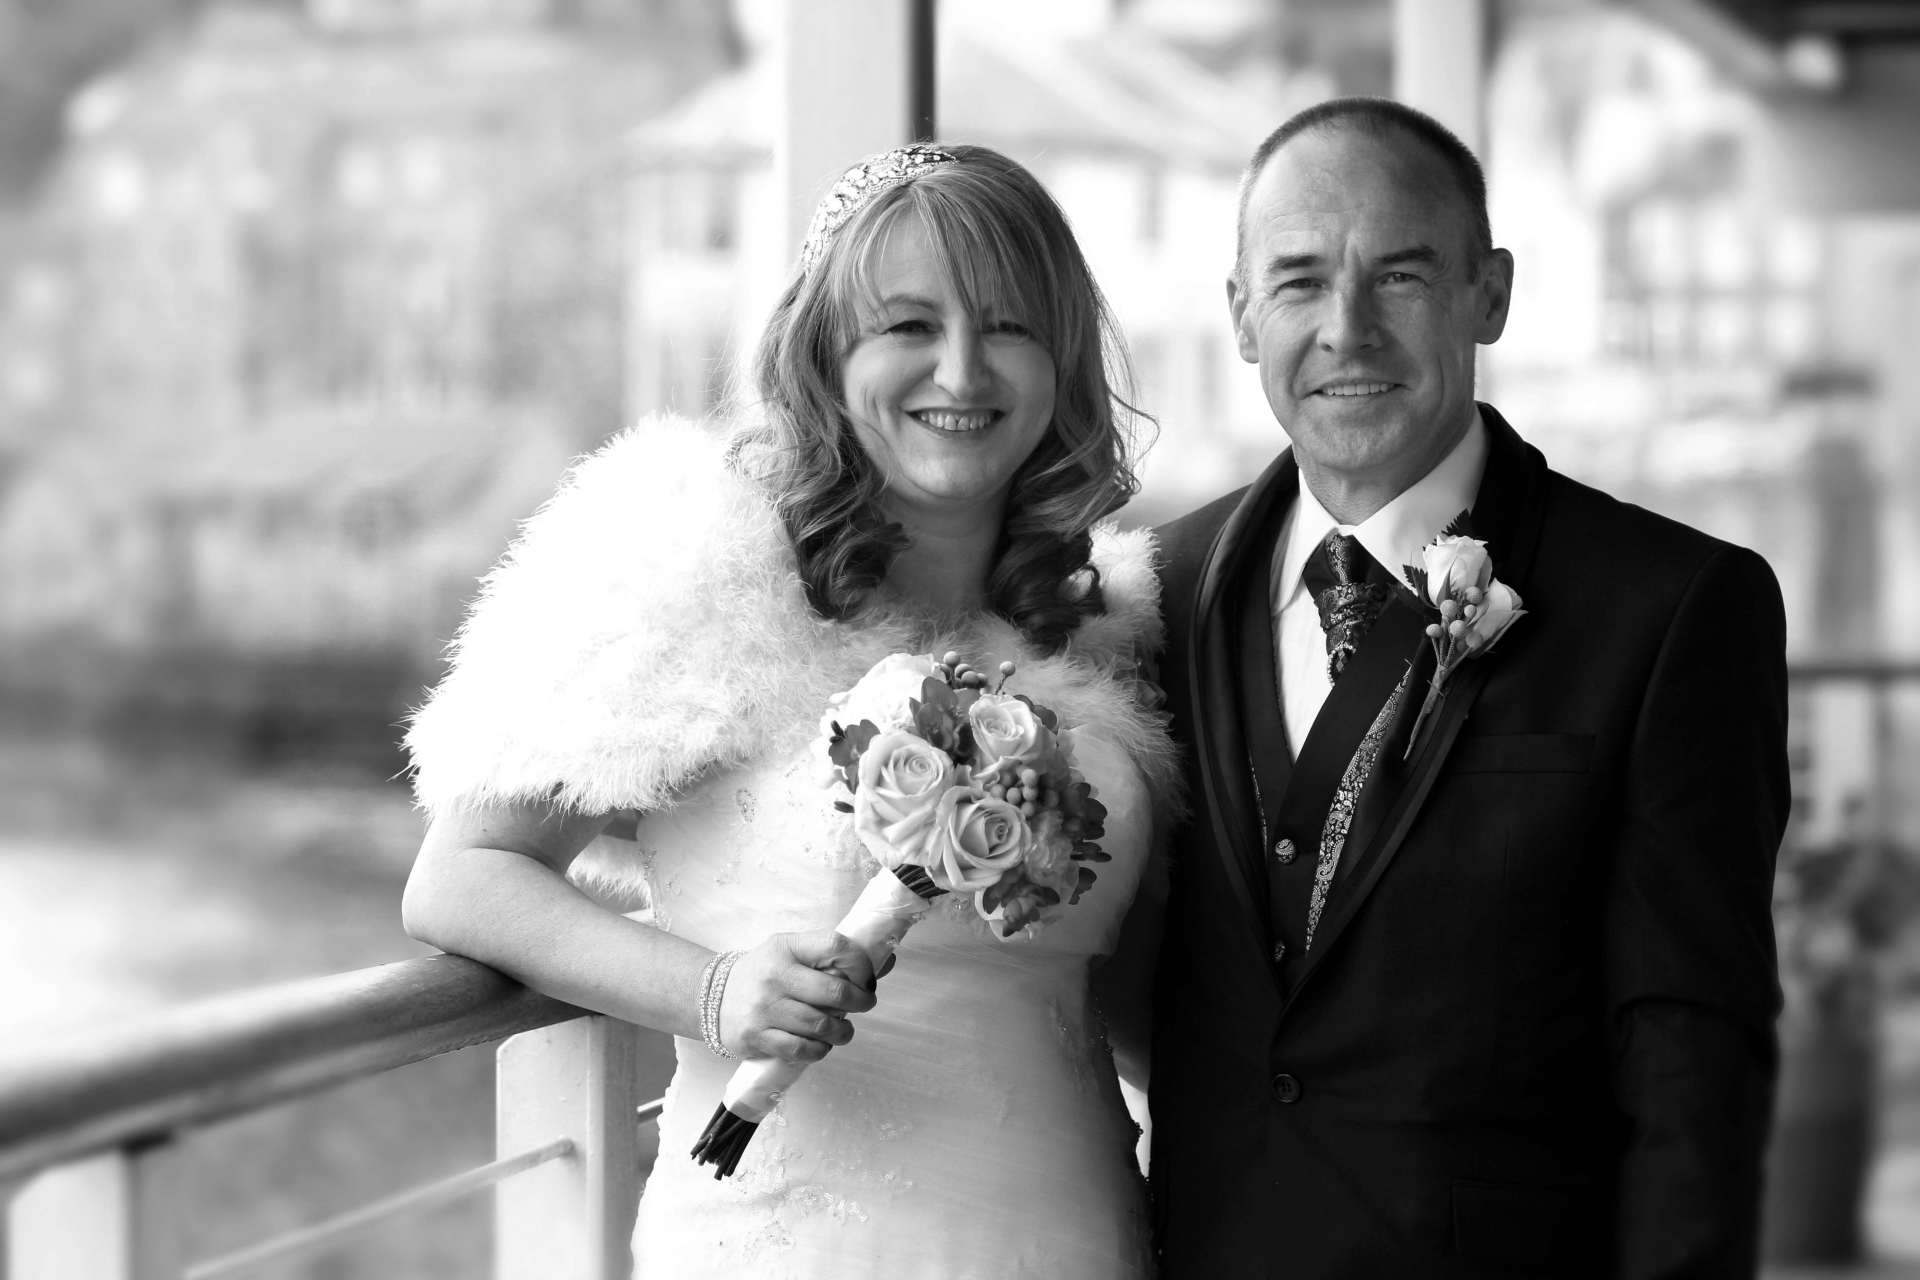 Edinburgh Wedding Photography - Lynn & Campbell at The Queensferry Hotel